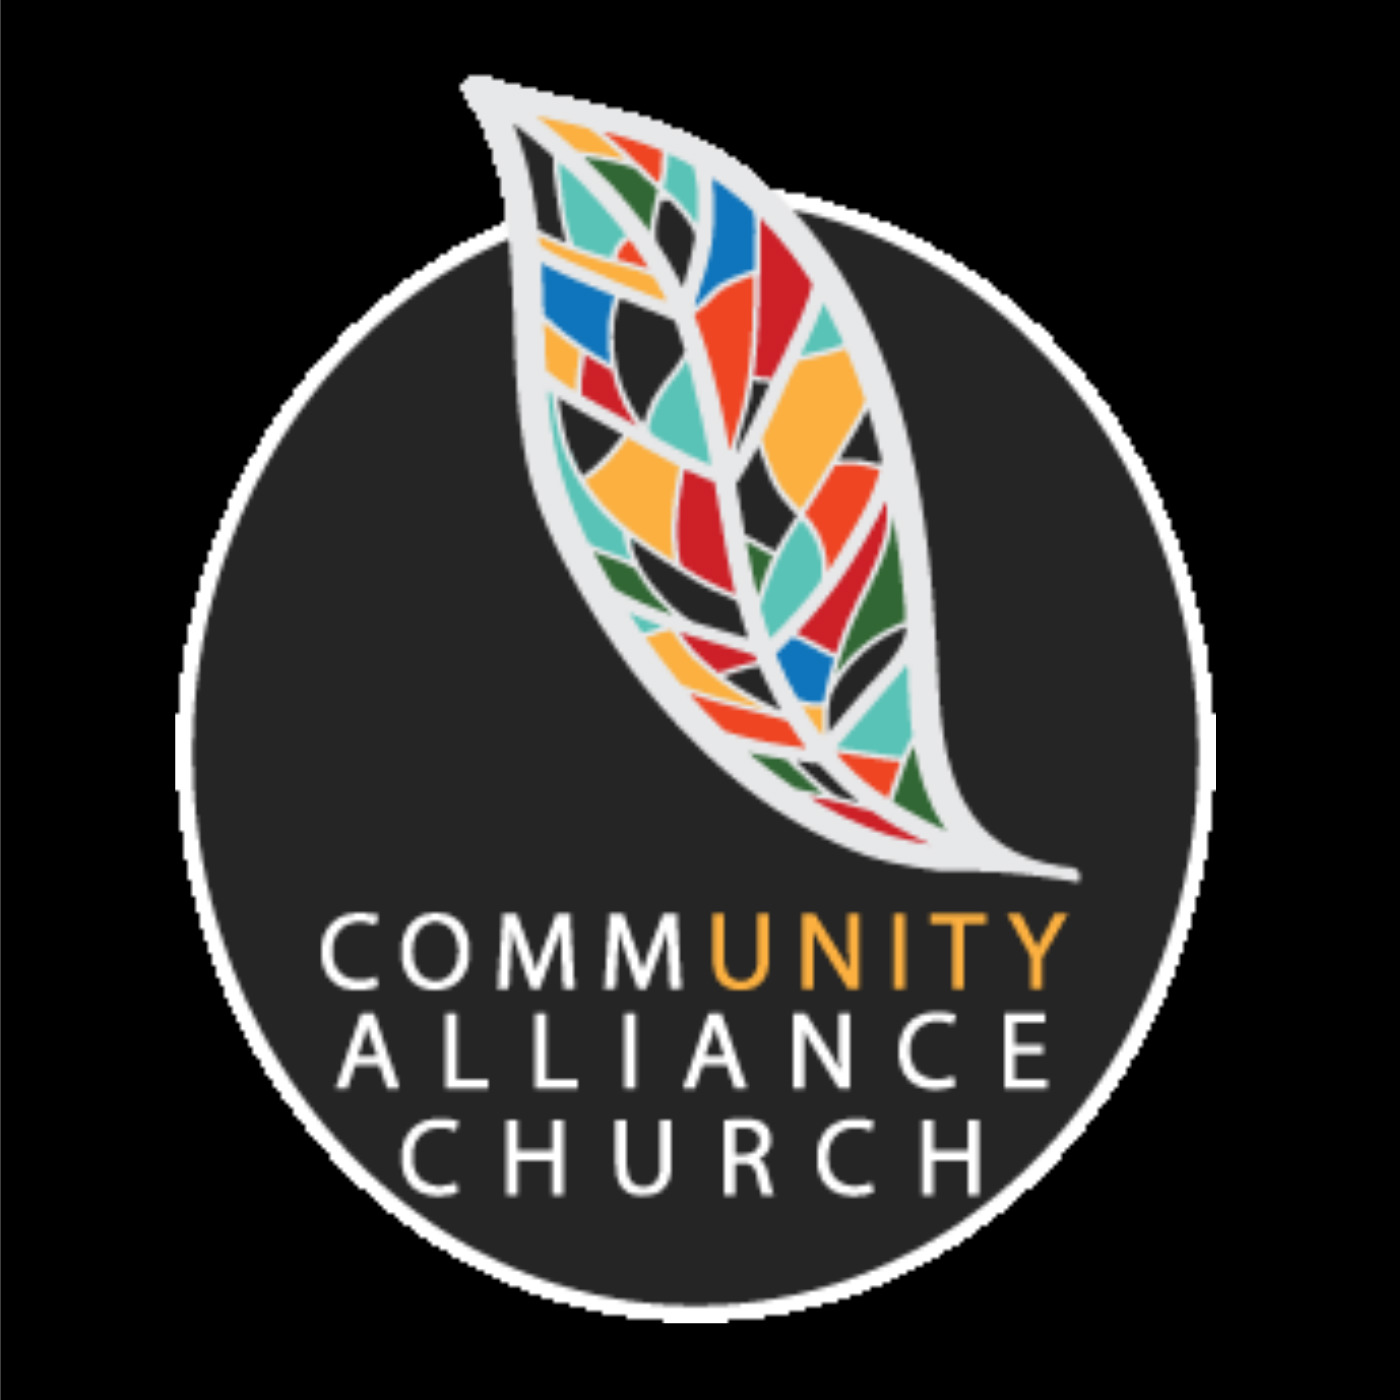 Butler Community Alliance Church